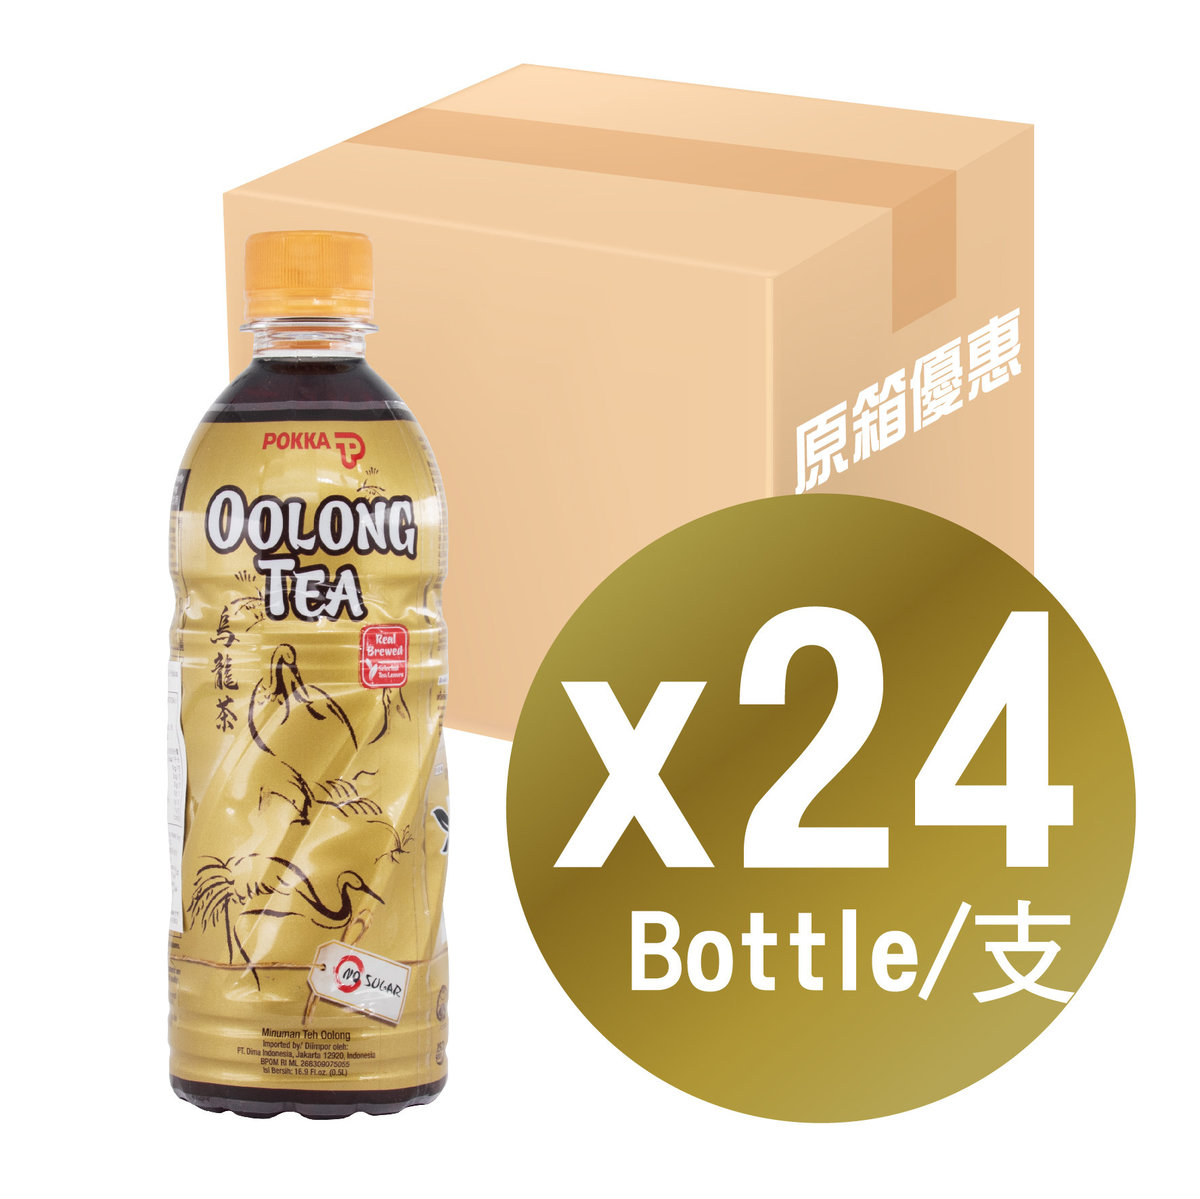 Oolong Tea (500ml x 24 bottles)